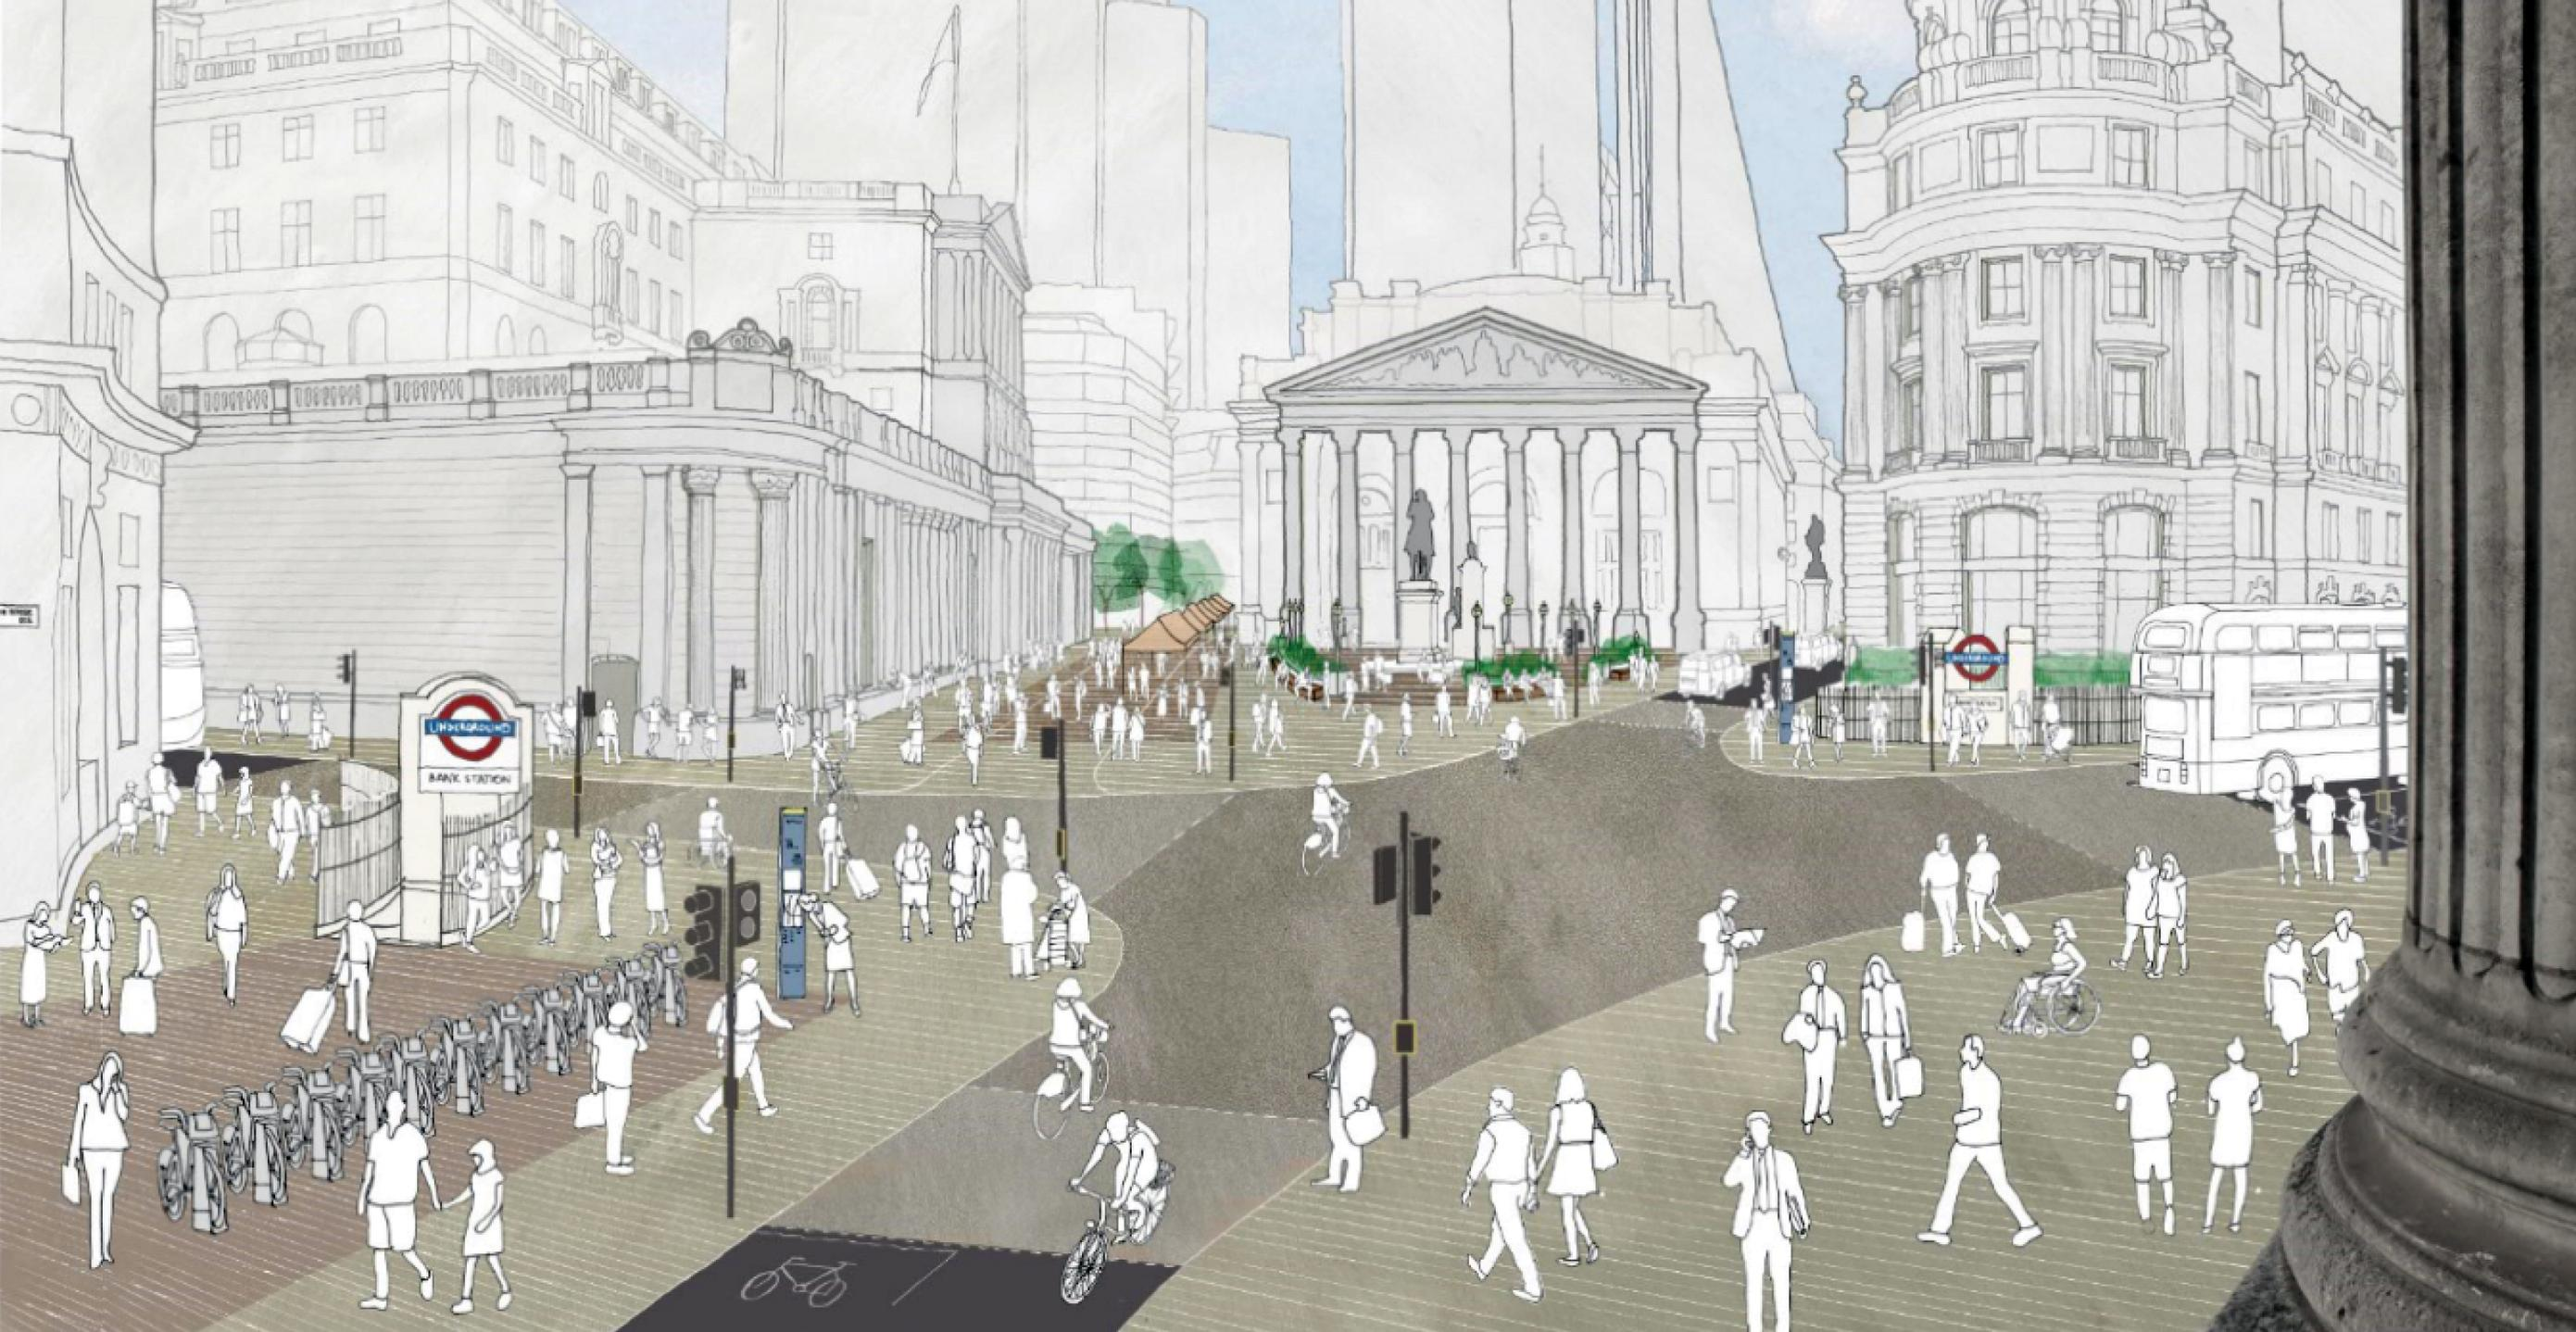 An artist's impression of Bank junction with two arms closed